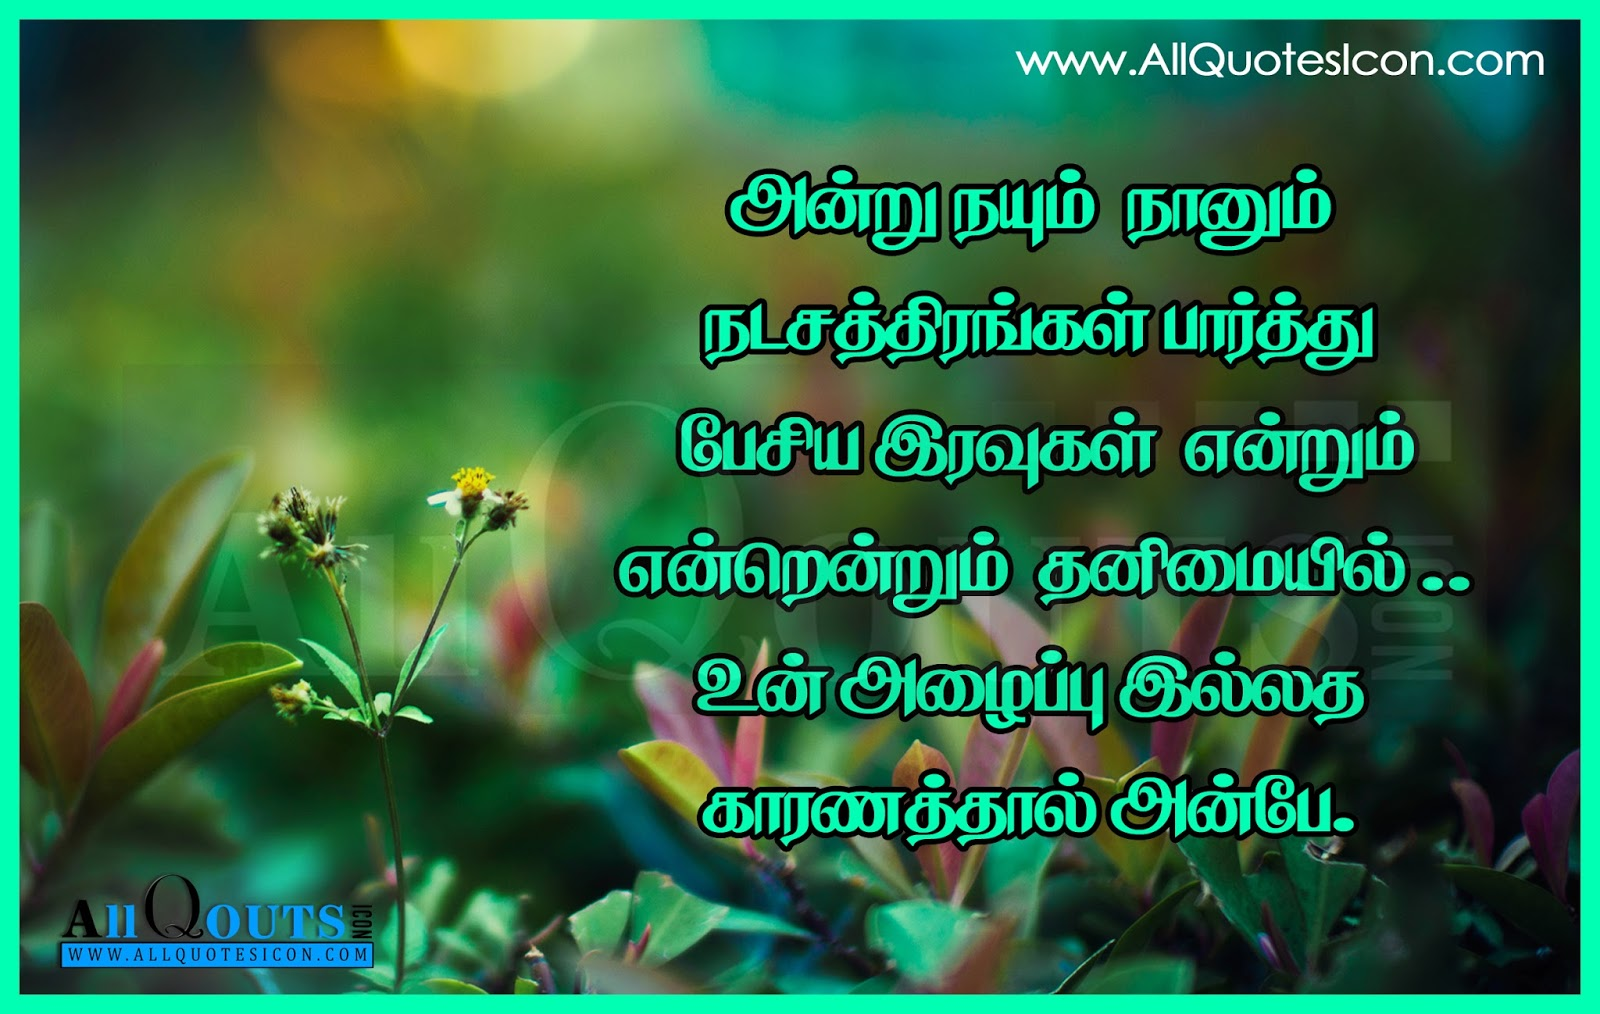 Latest Quotes About Life Latest Tamil Kavithaigal Life Quotes Pictures Top Inspirational